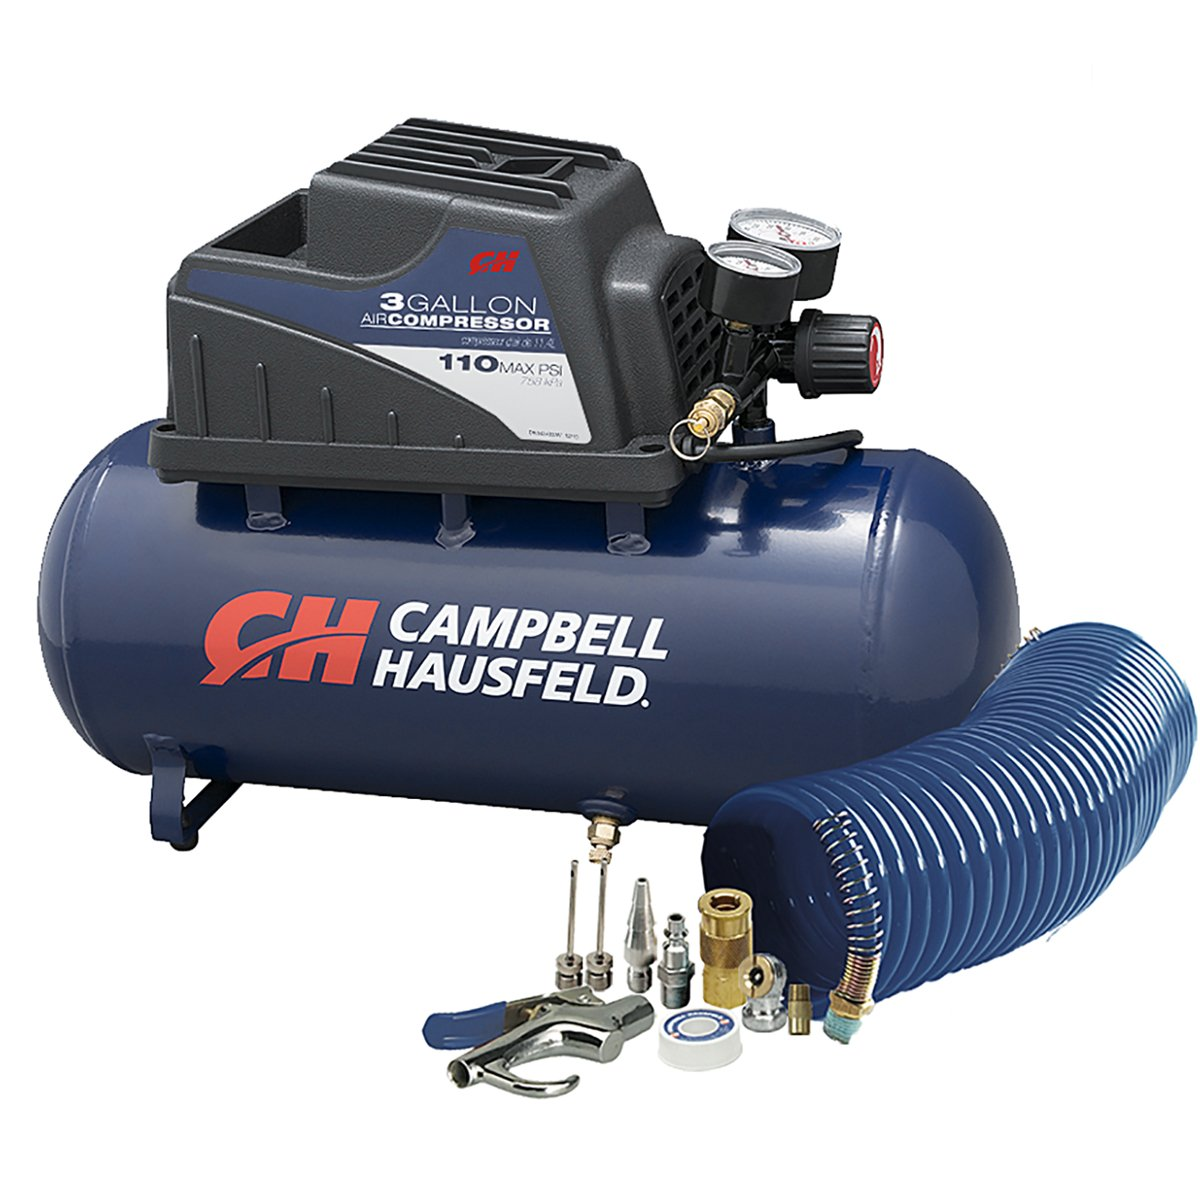 Air Compressor, Portable, 3 Gallon Horizontal, Oilless, w/ 10 Piece Accessory Kit Including Air Hose & Inflation Gun (Campbell Hausfeld FP209499AV) by Campbell Hausfeld